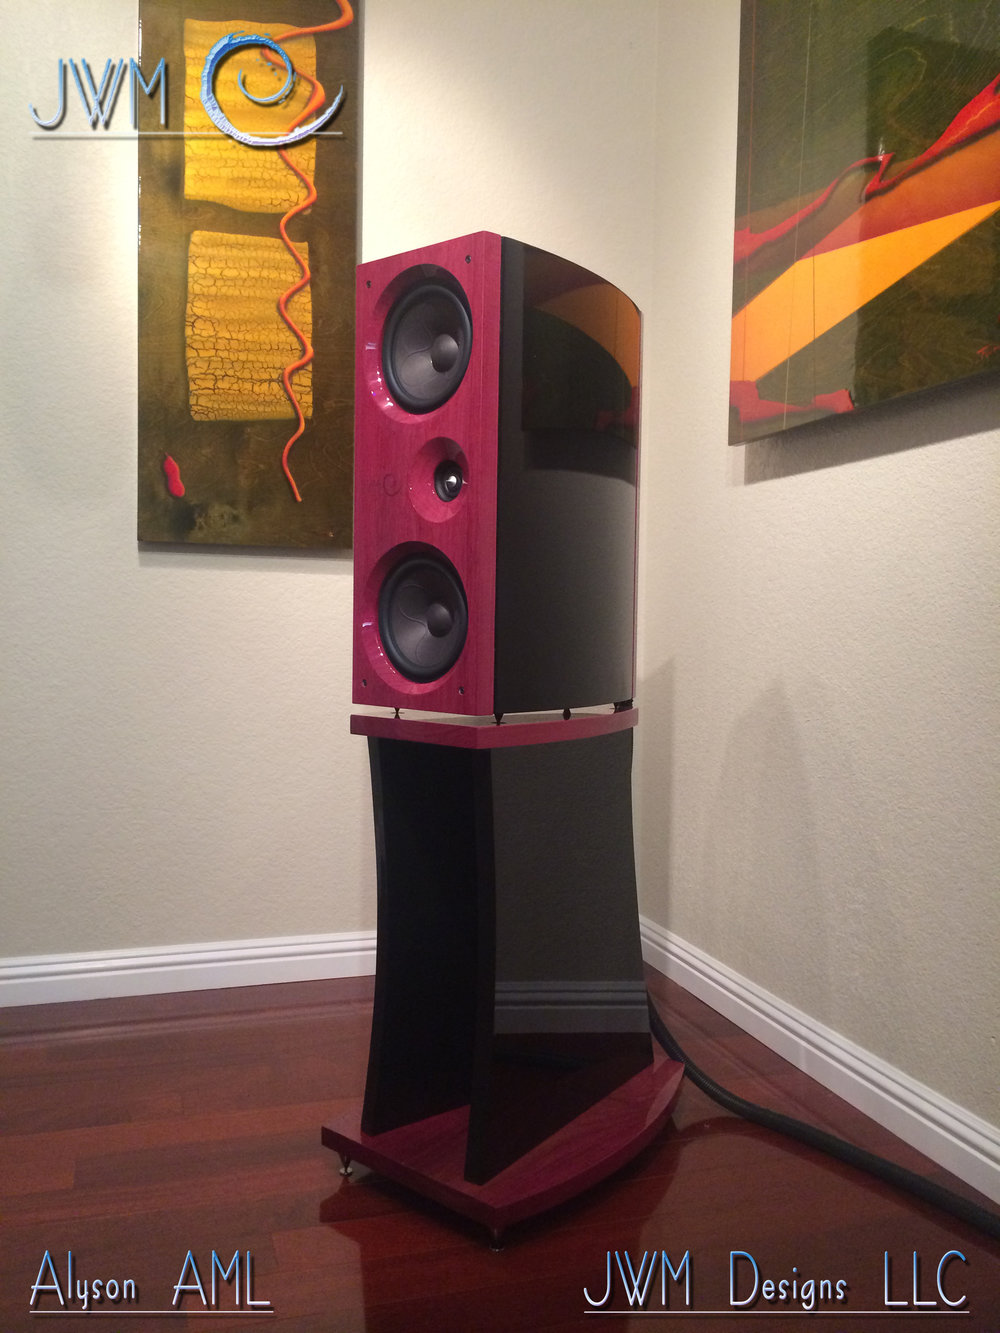 Press Awards Jwm Acoustics Bi Wiring Speakers The Design Is Culmination Of Designer Joshua Miles 30 Years Building For Bands Home Audio And Pro Use